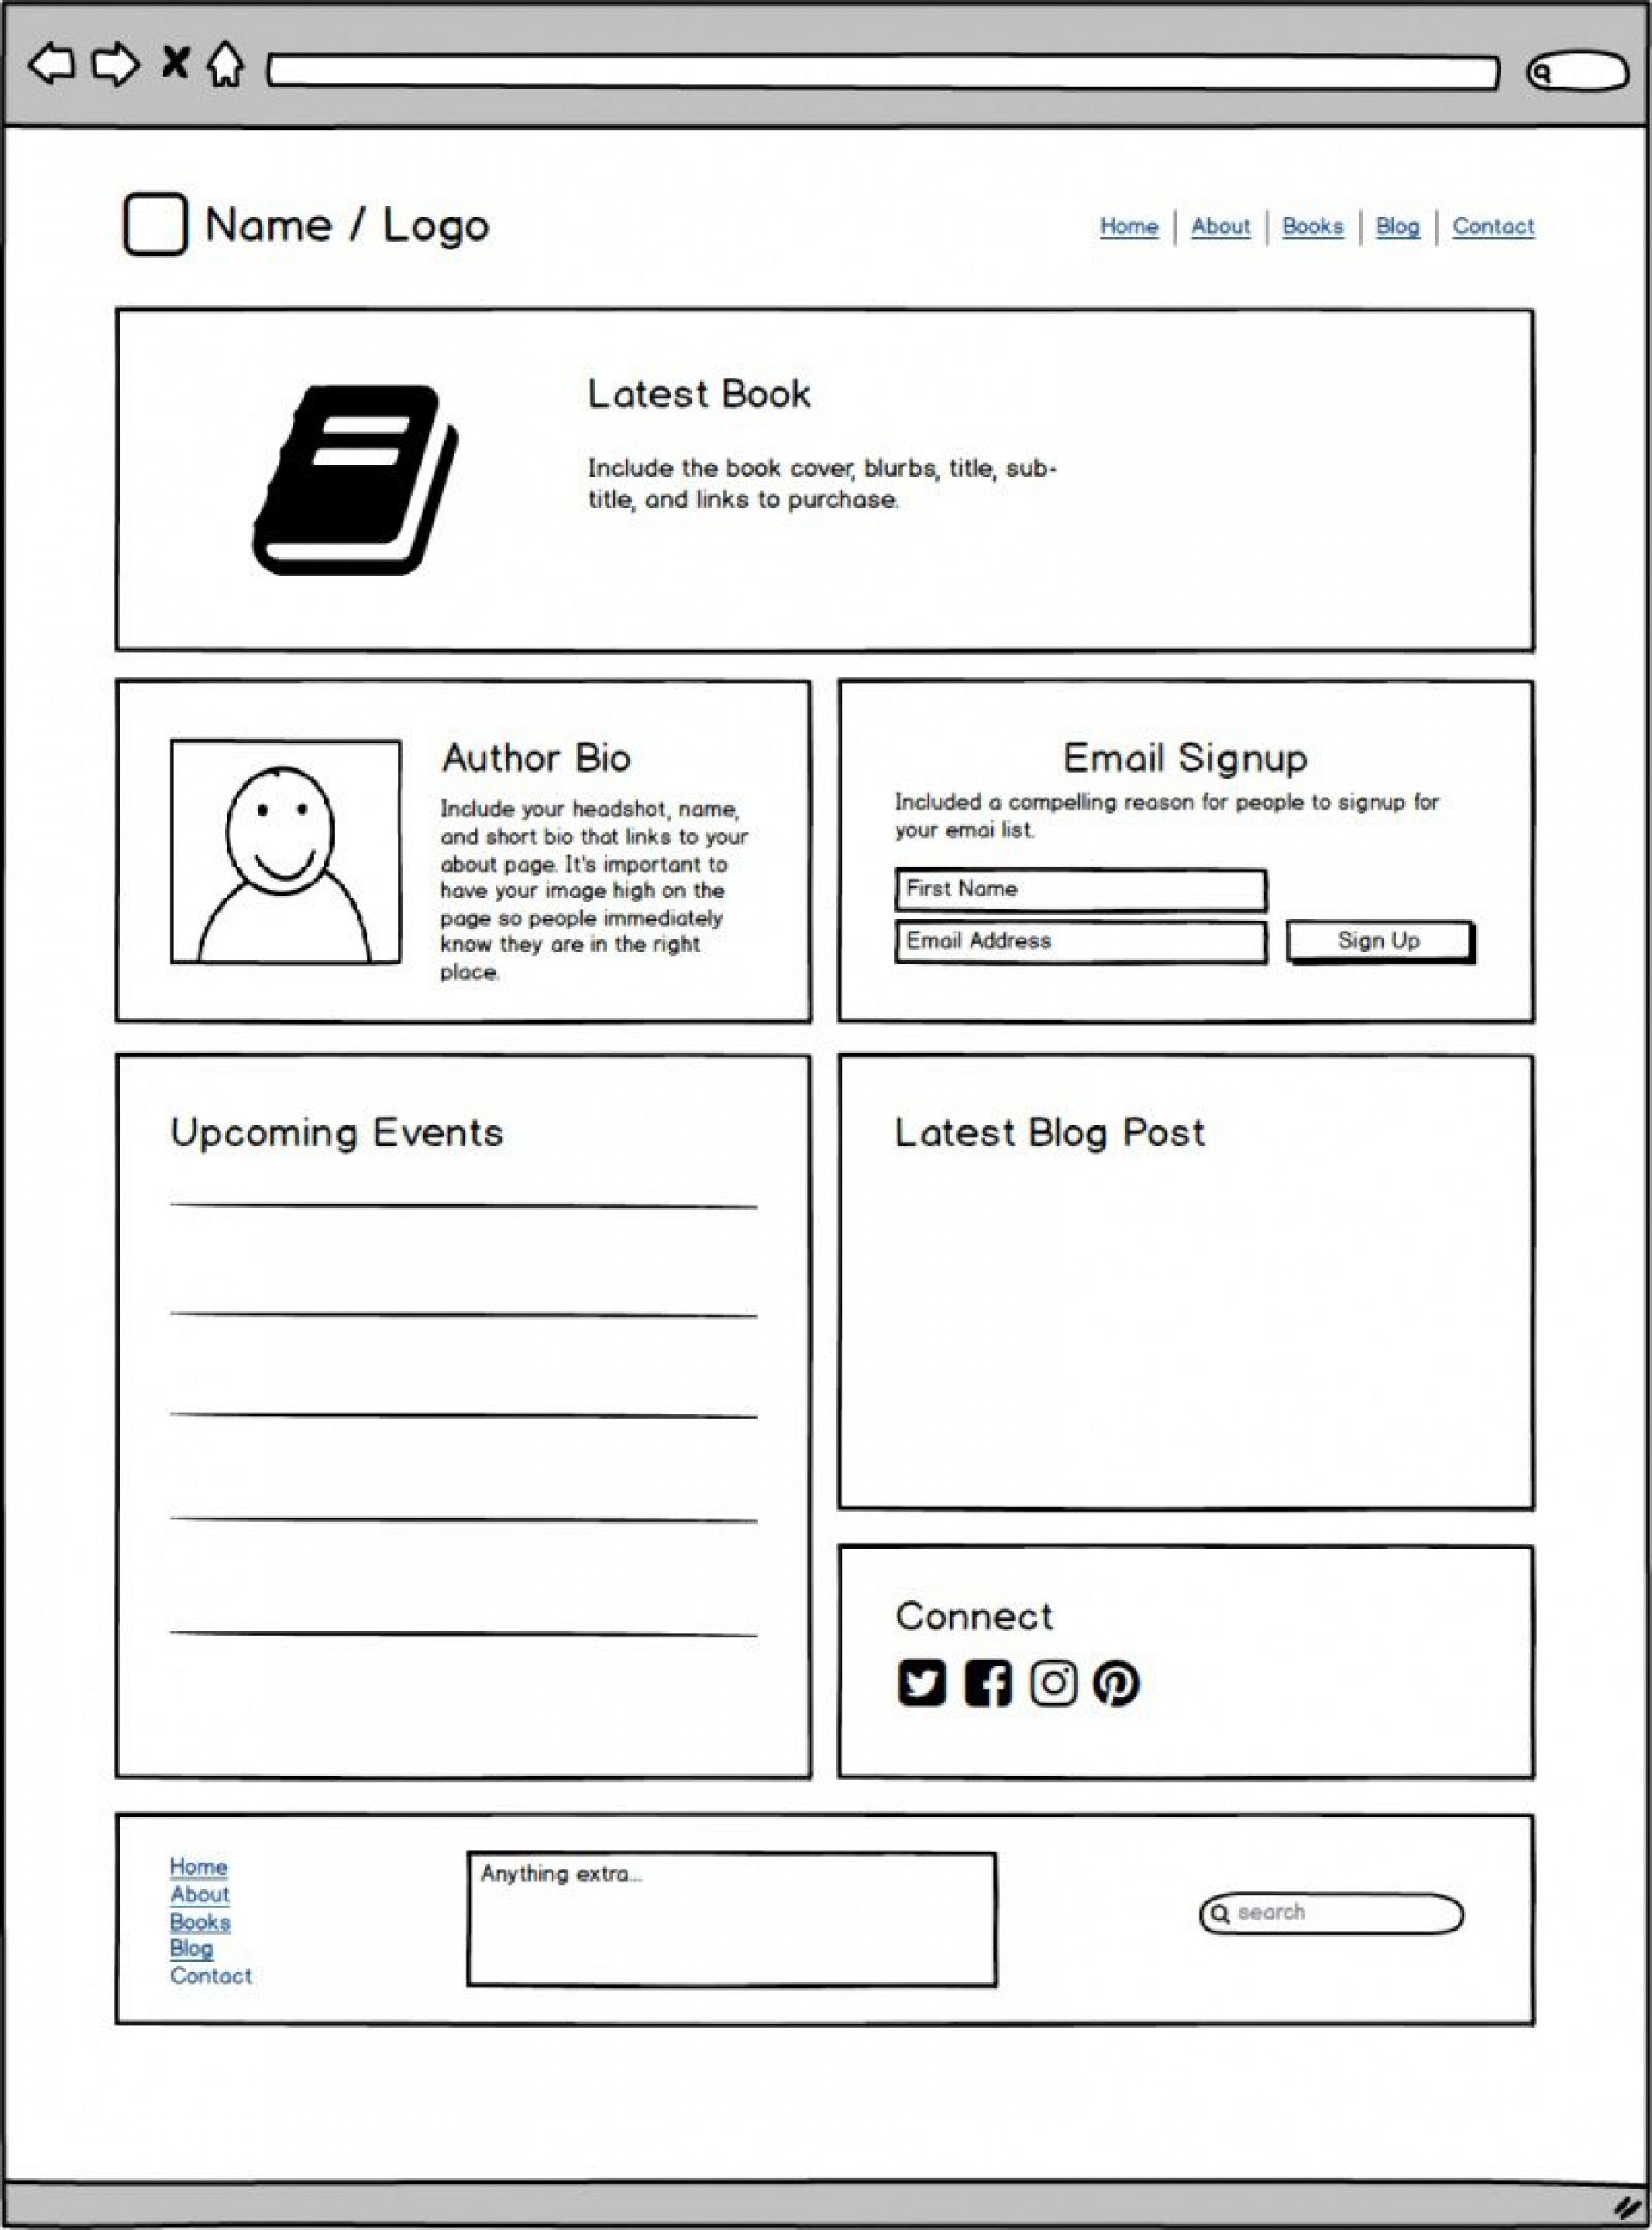 005 Formidable About The Author Template High Resolution  Pdf All For Student1920